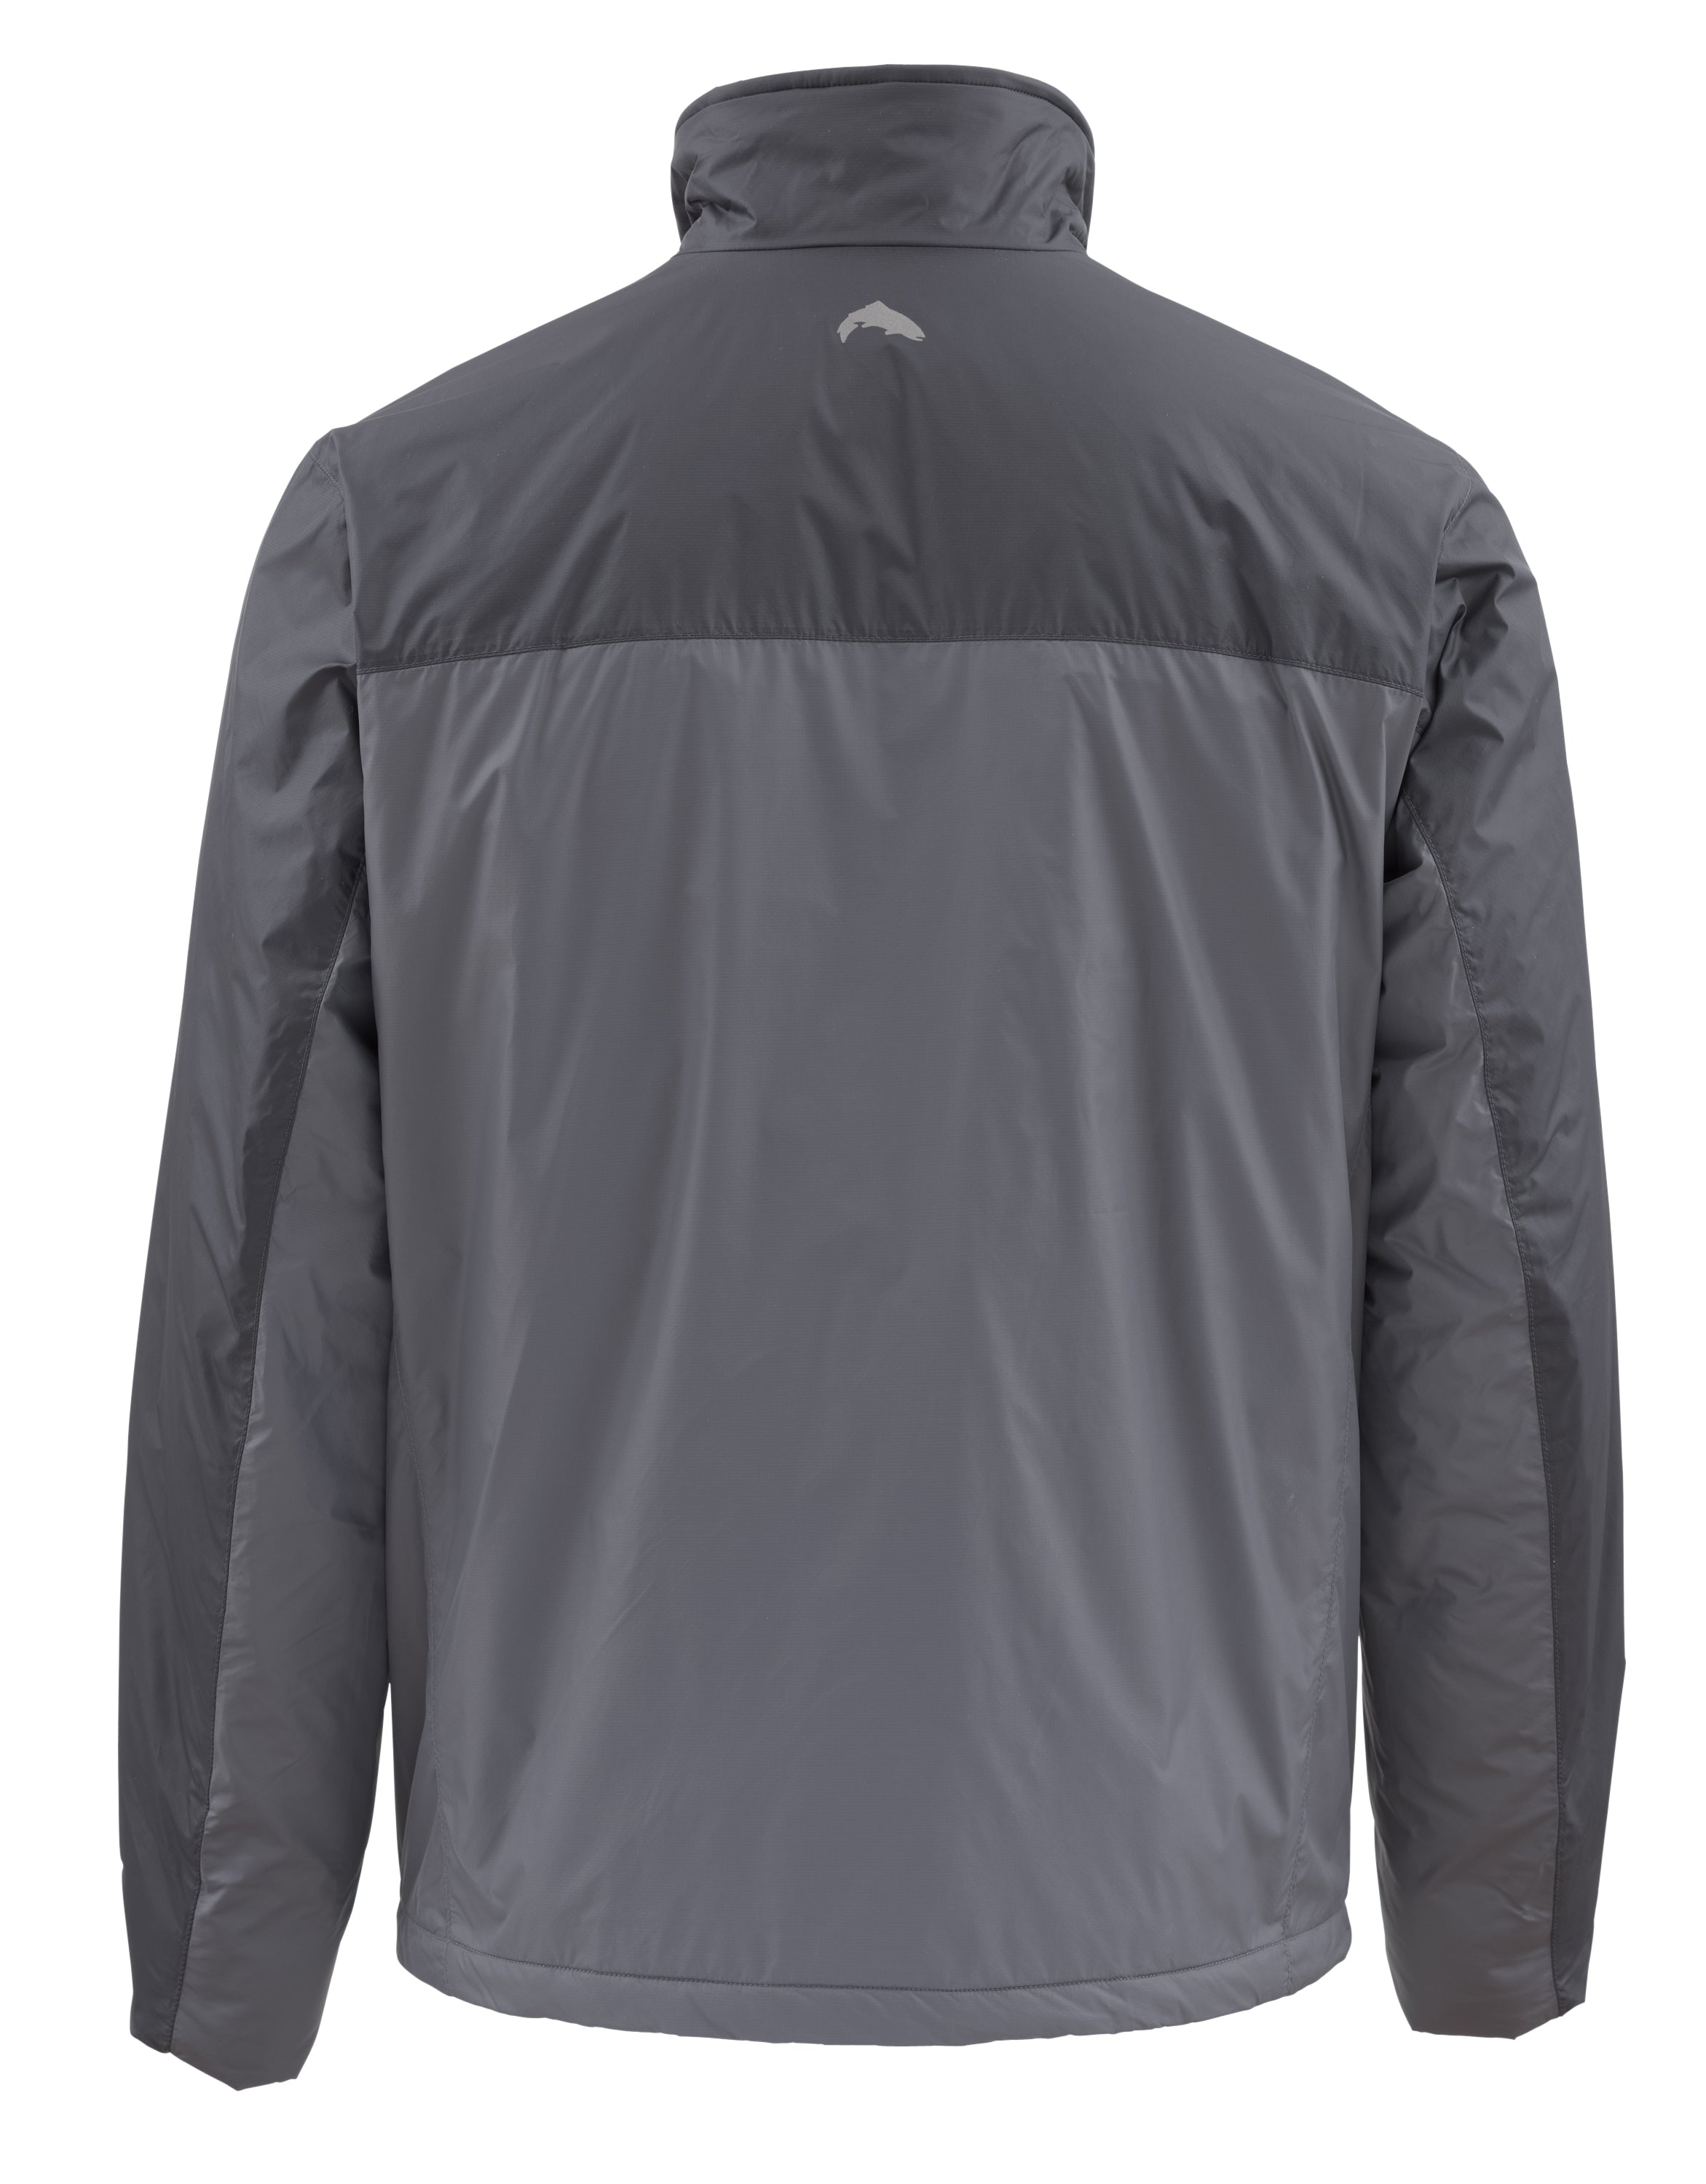 SALE Details about  /Simms Midstream Insulated Jacket Quarter Zip